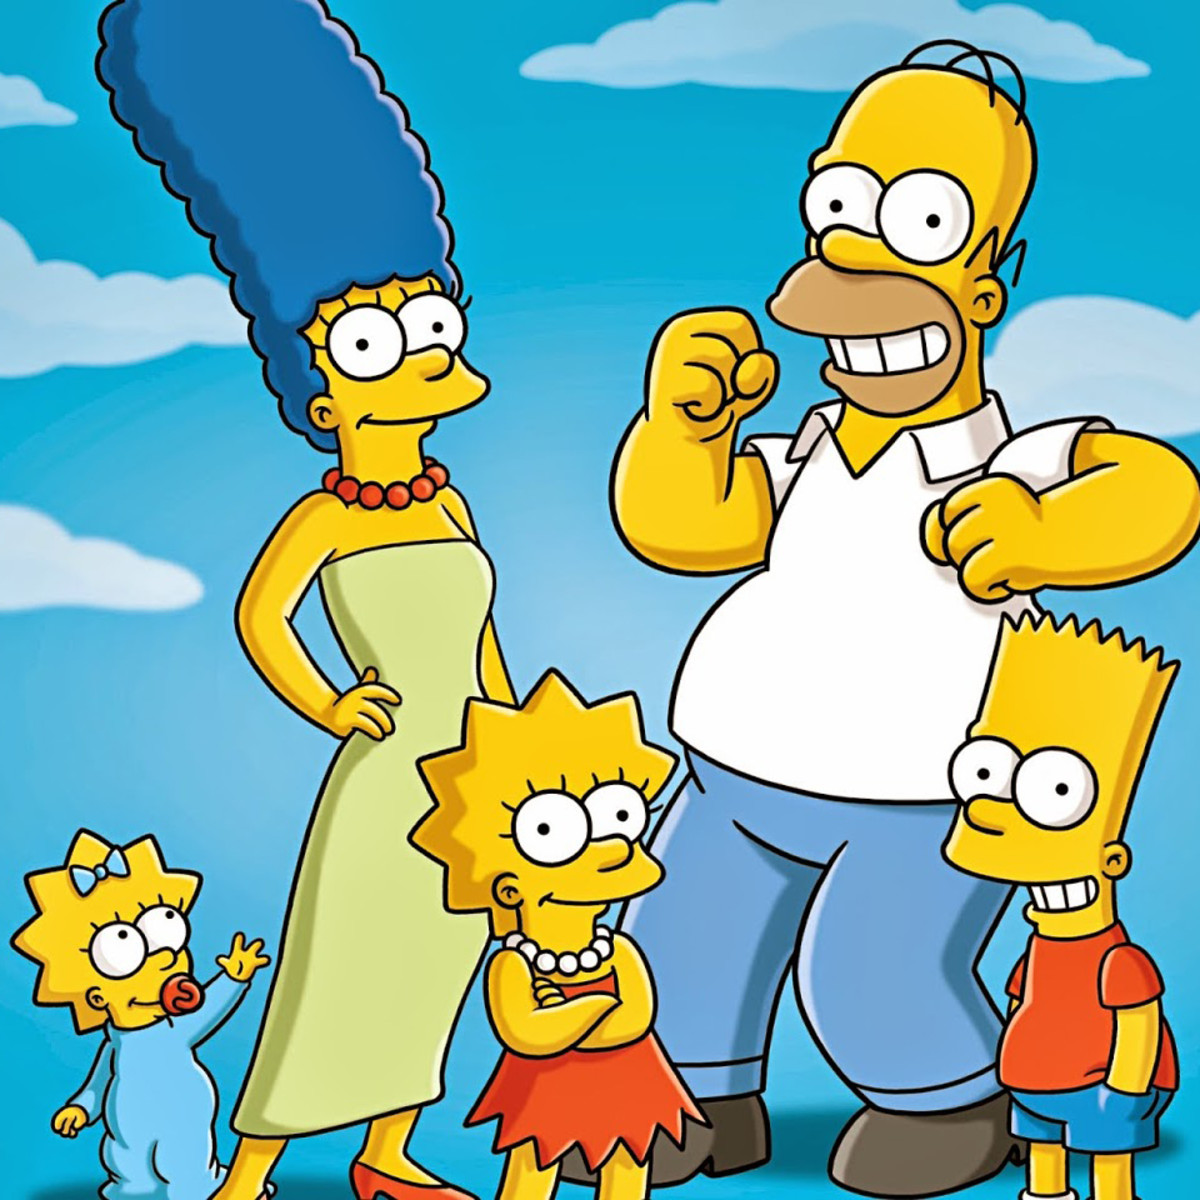 A History of Matt Groening's 'The Simpsons'